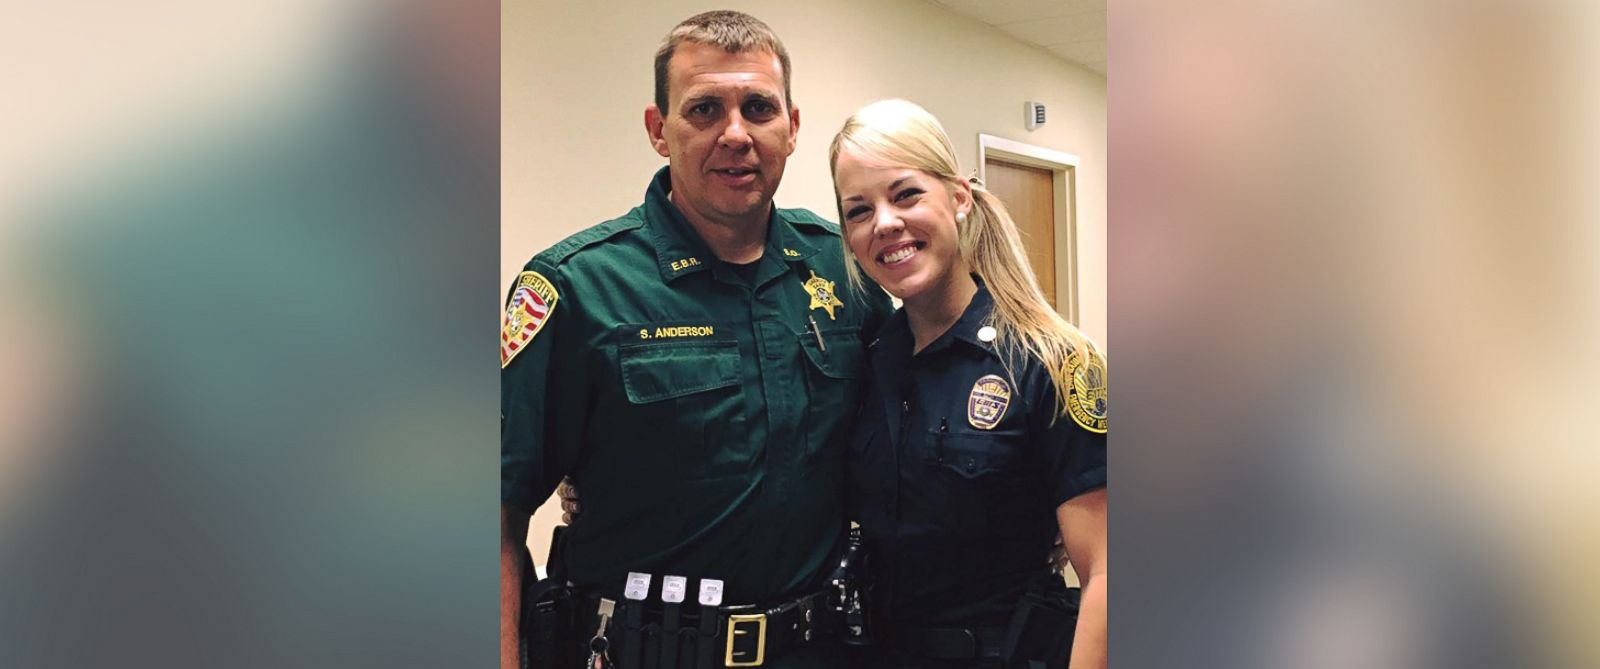 PHOTO: East Baton Rouge Sheriffs Office shared Haley Elizabeth Fishers post on Facebook, March 20, 2017, about Sgt. Shawn Anderson.